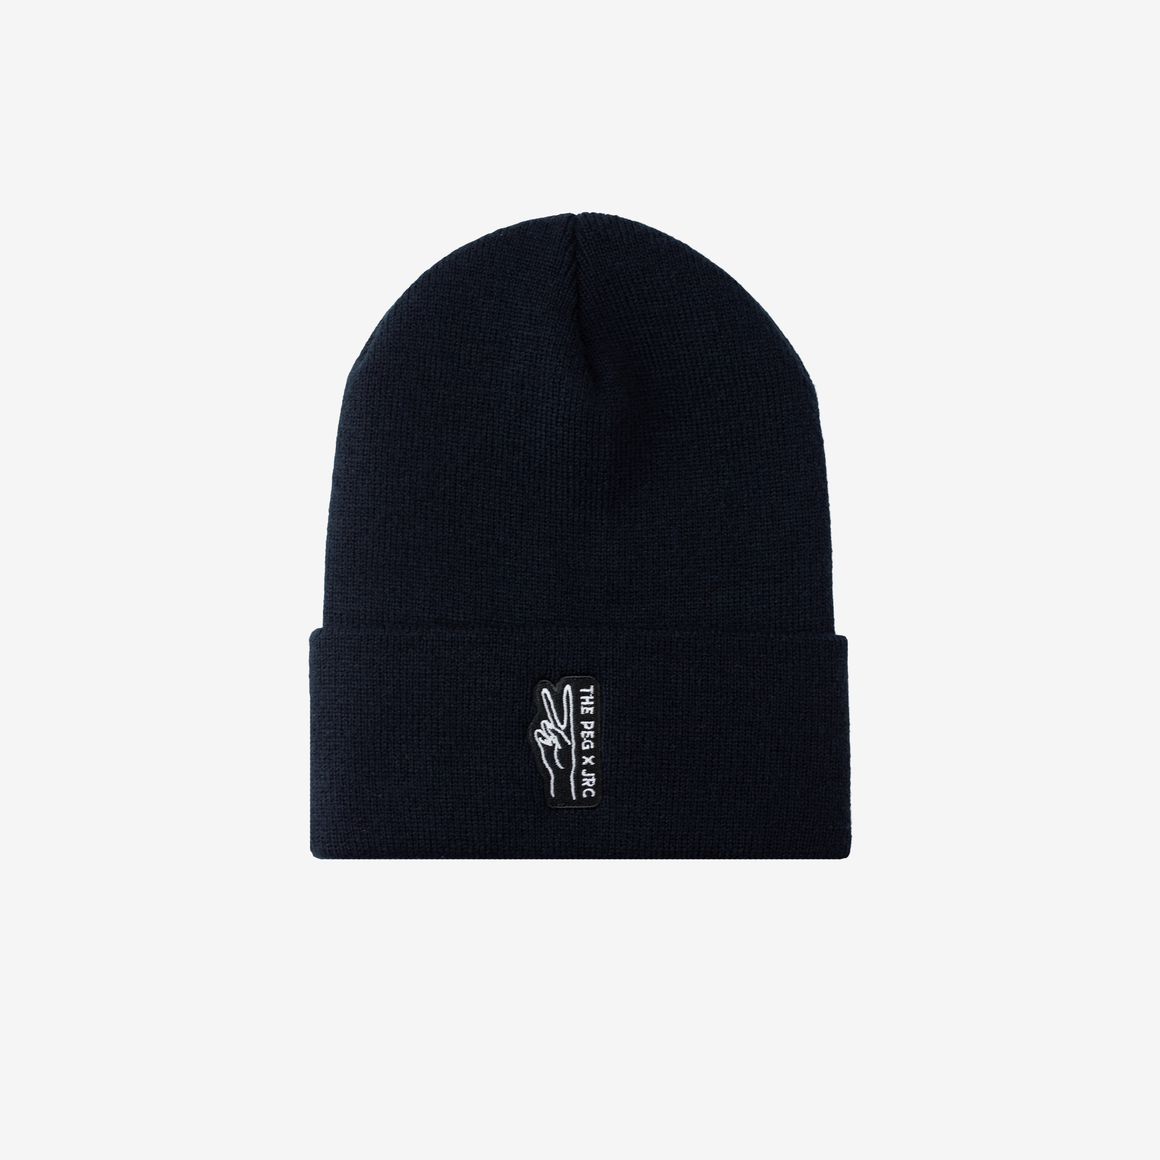 The Peg Authentic x Jenna Rae Cakes Classic Cuffed Toque (Black)